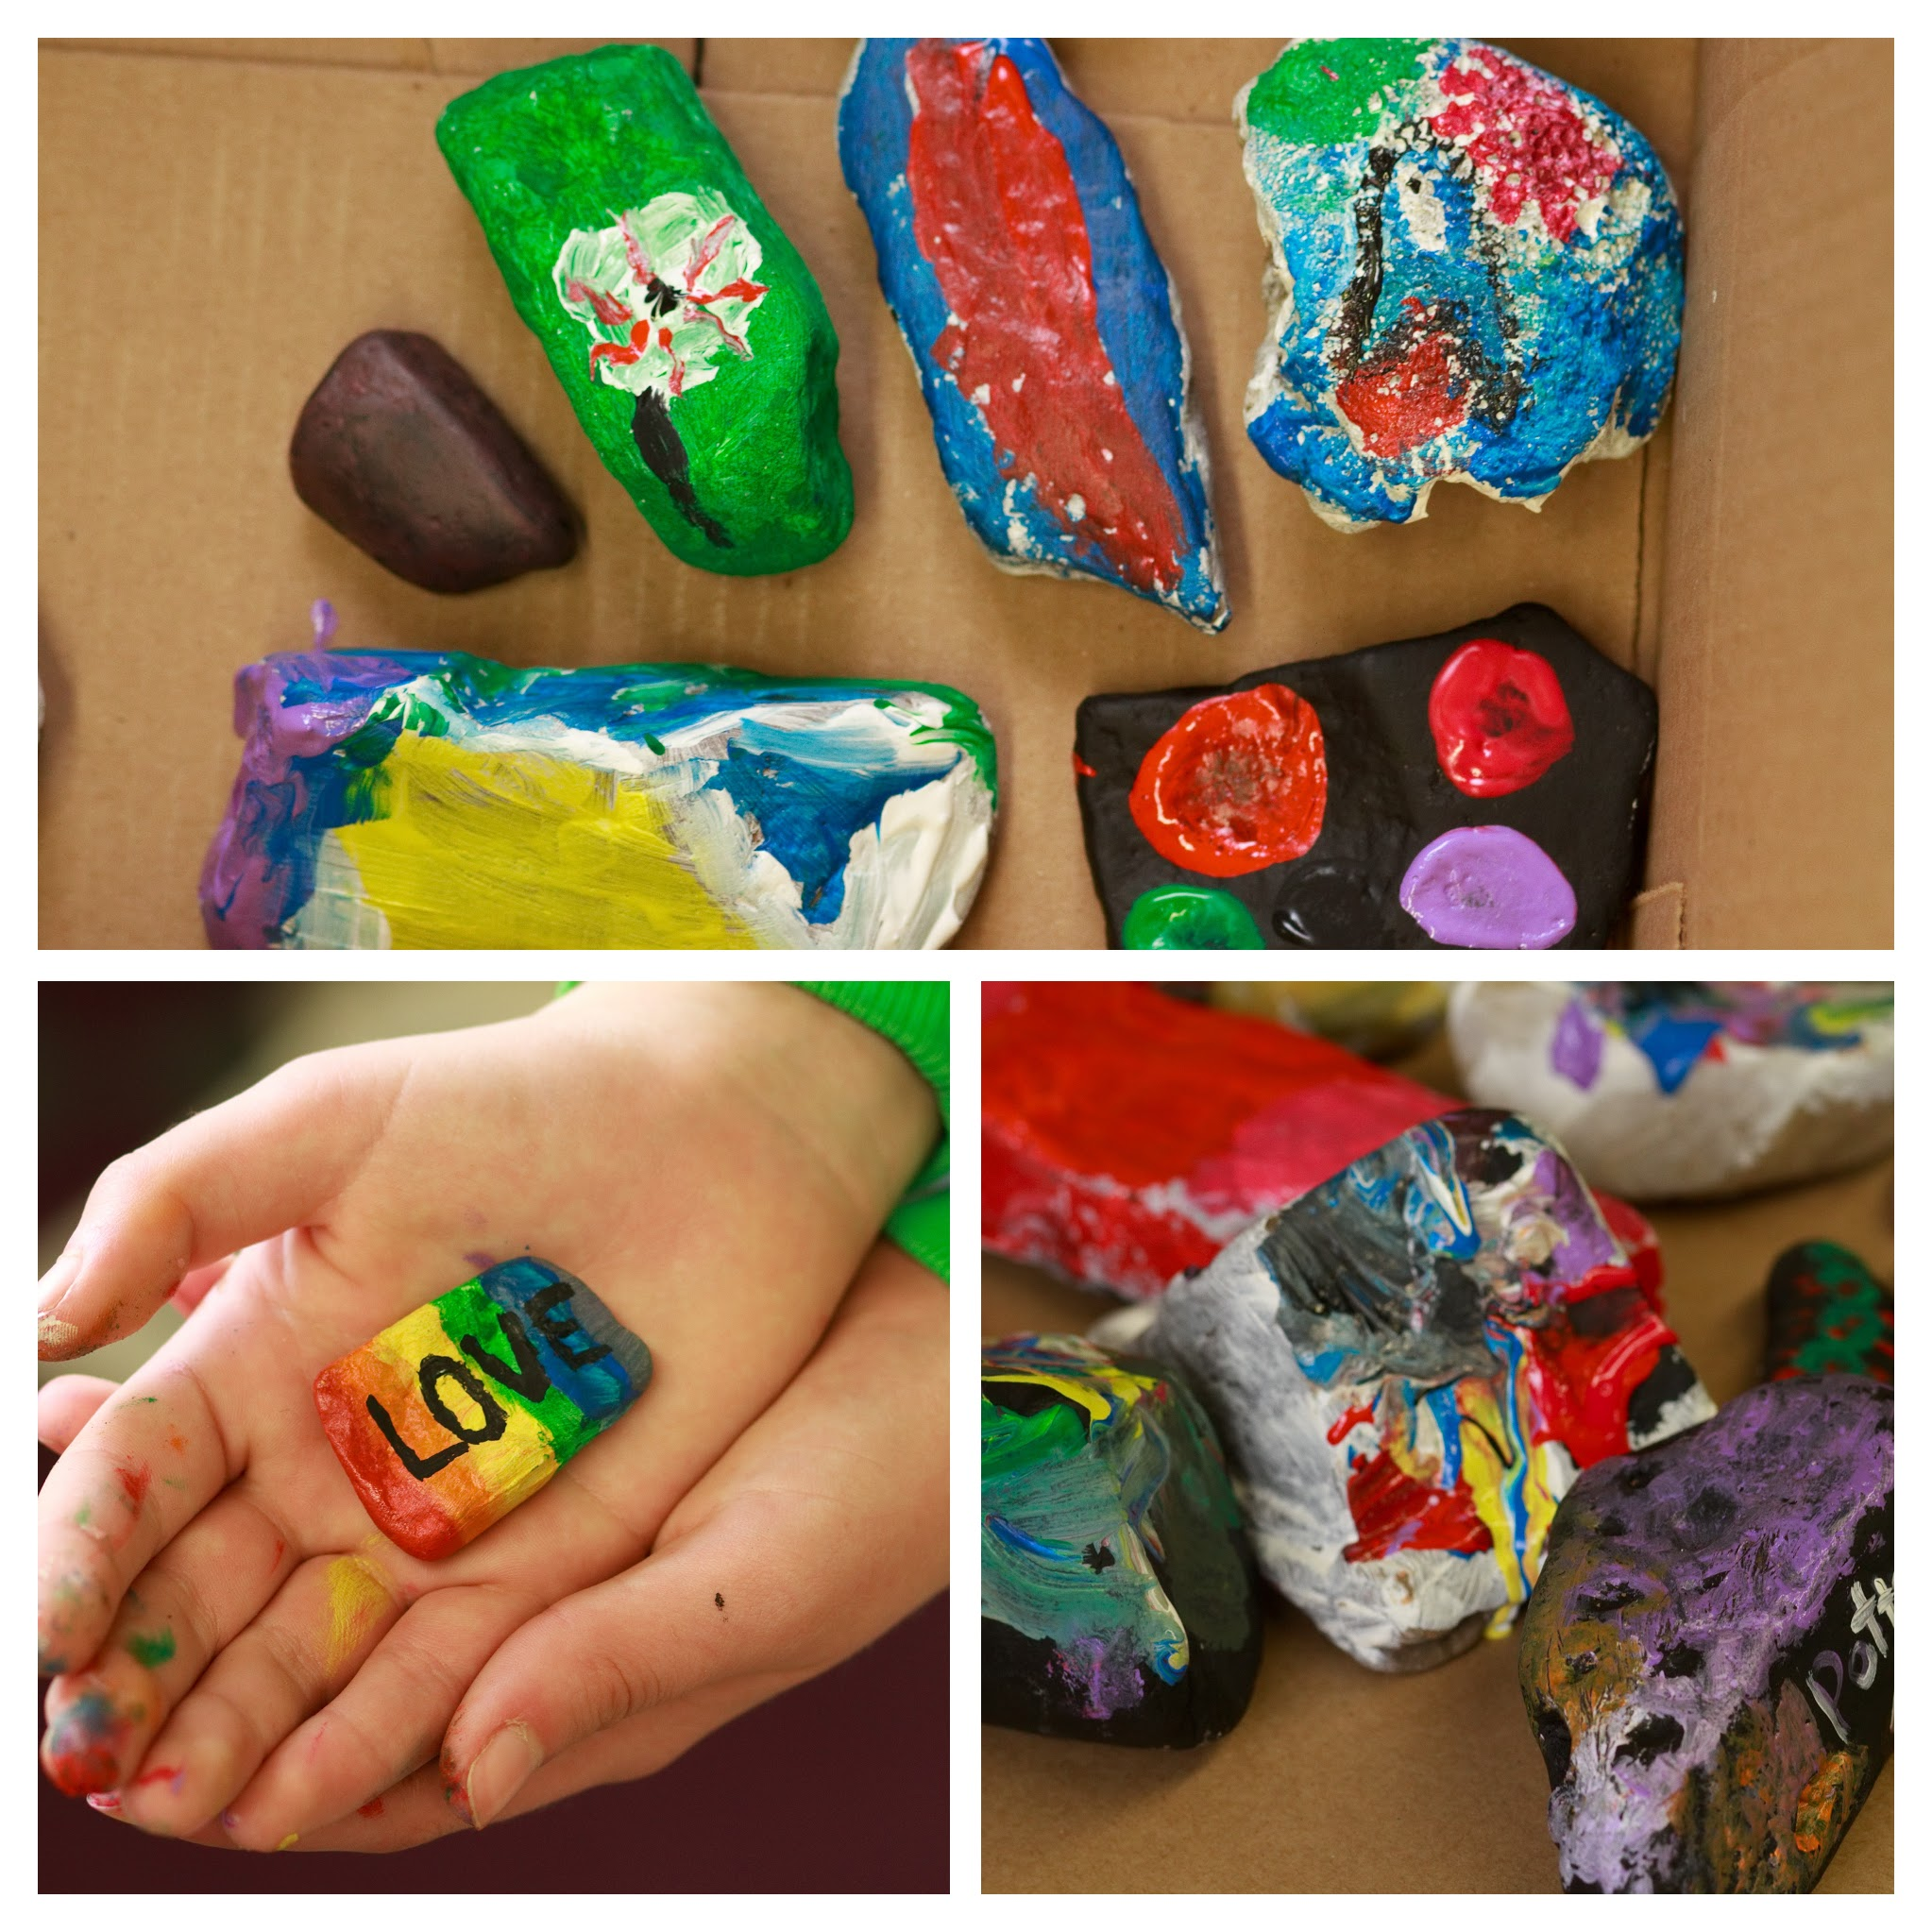 Painting Rocks at the Pottstown Library